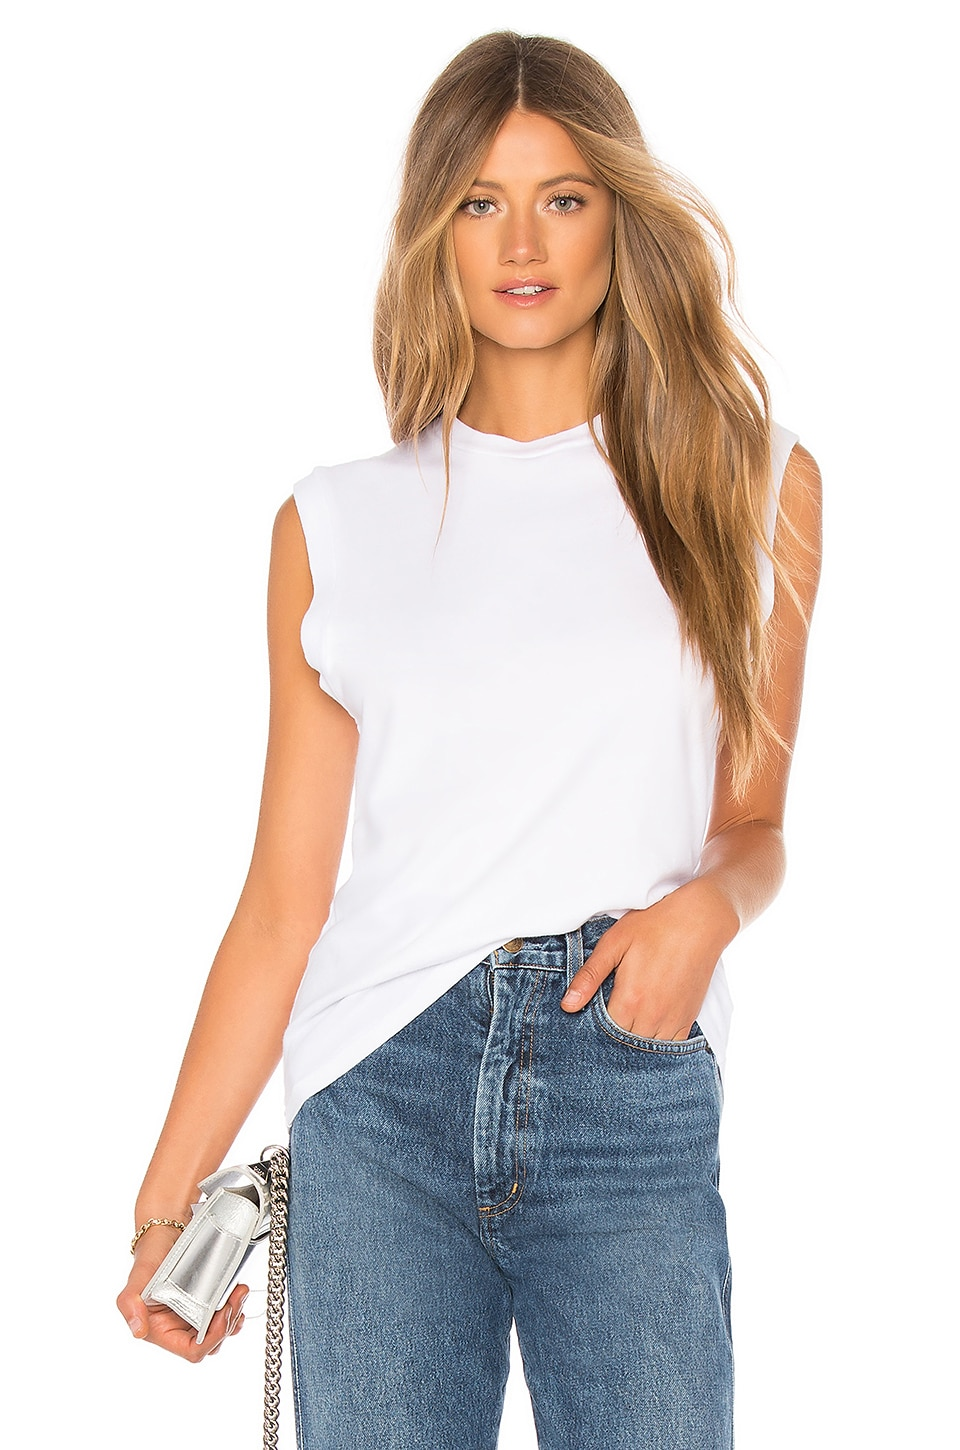 Muscle Tee             AGOLDE                                                                                                                                         Sale price:                                                                       CA$ 48.34                                                                                                  Previous price:                                                                       CA$ 82.47 8